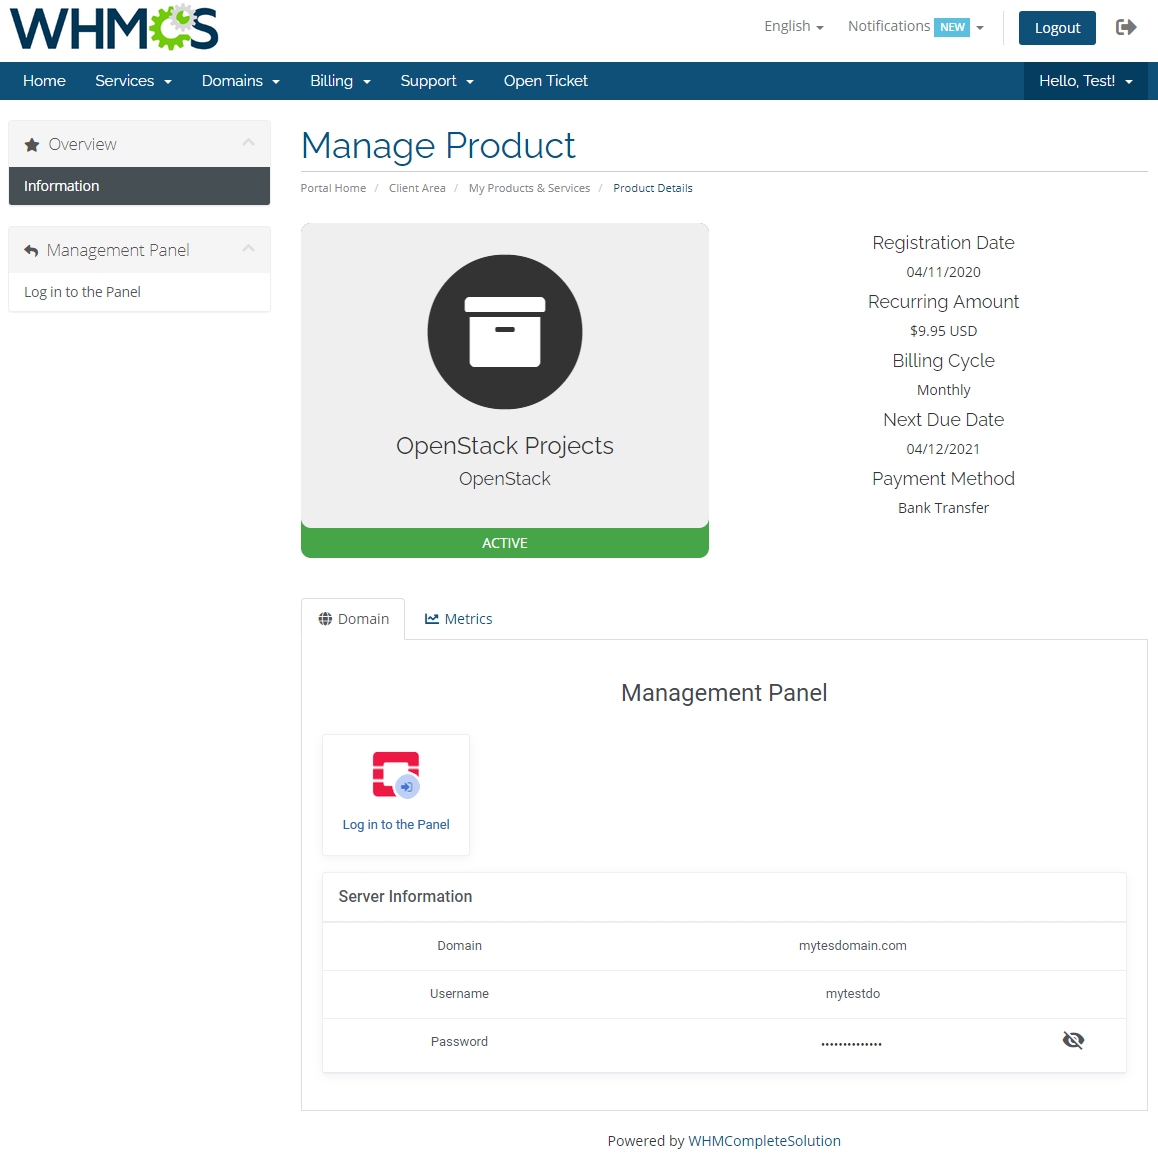 OpenStack Projects For WHMCS: Module Screenshot 1